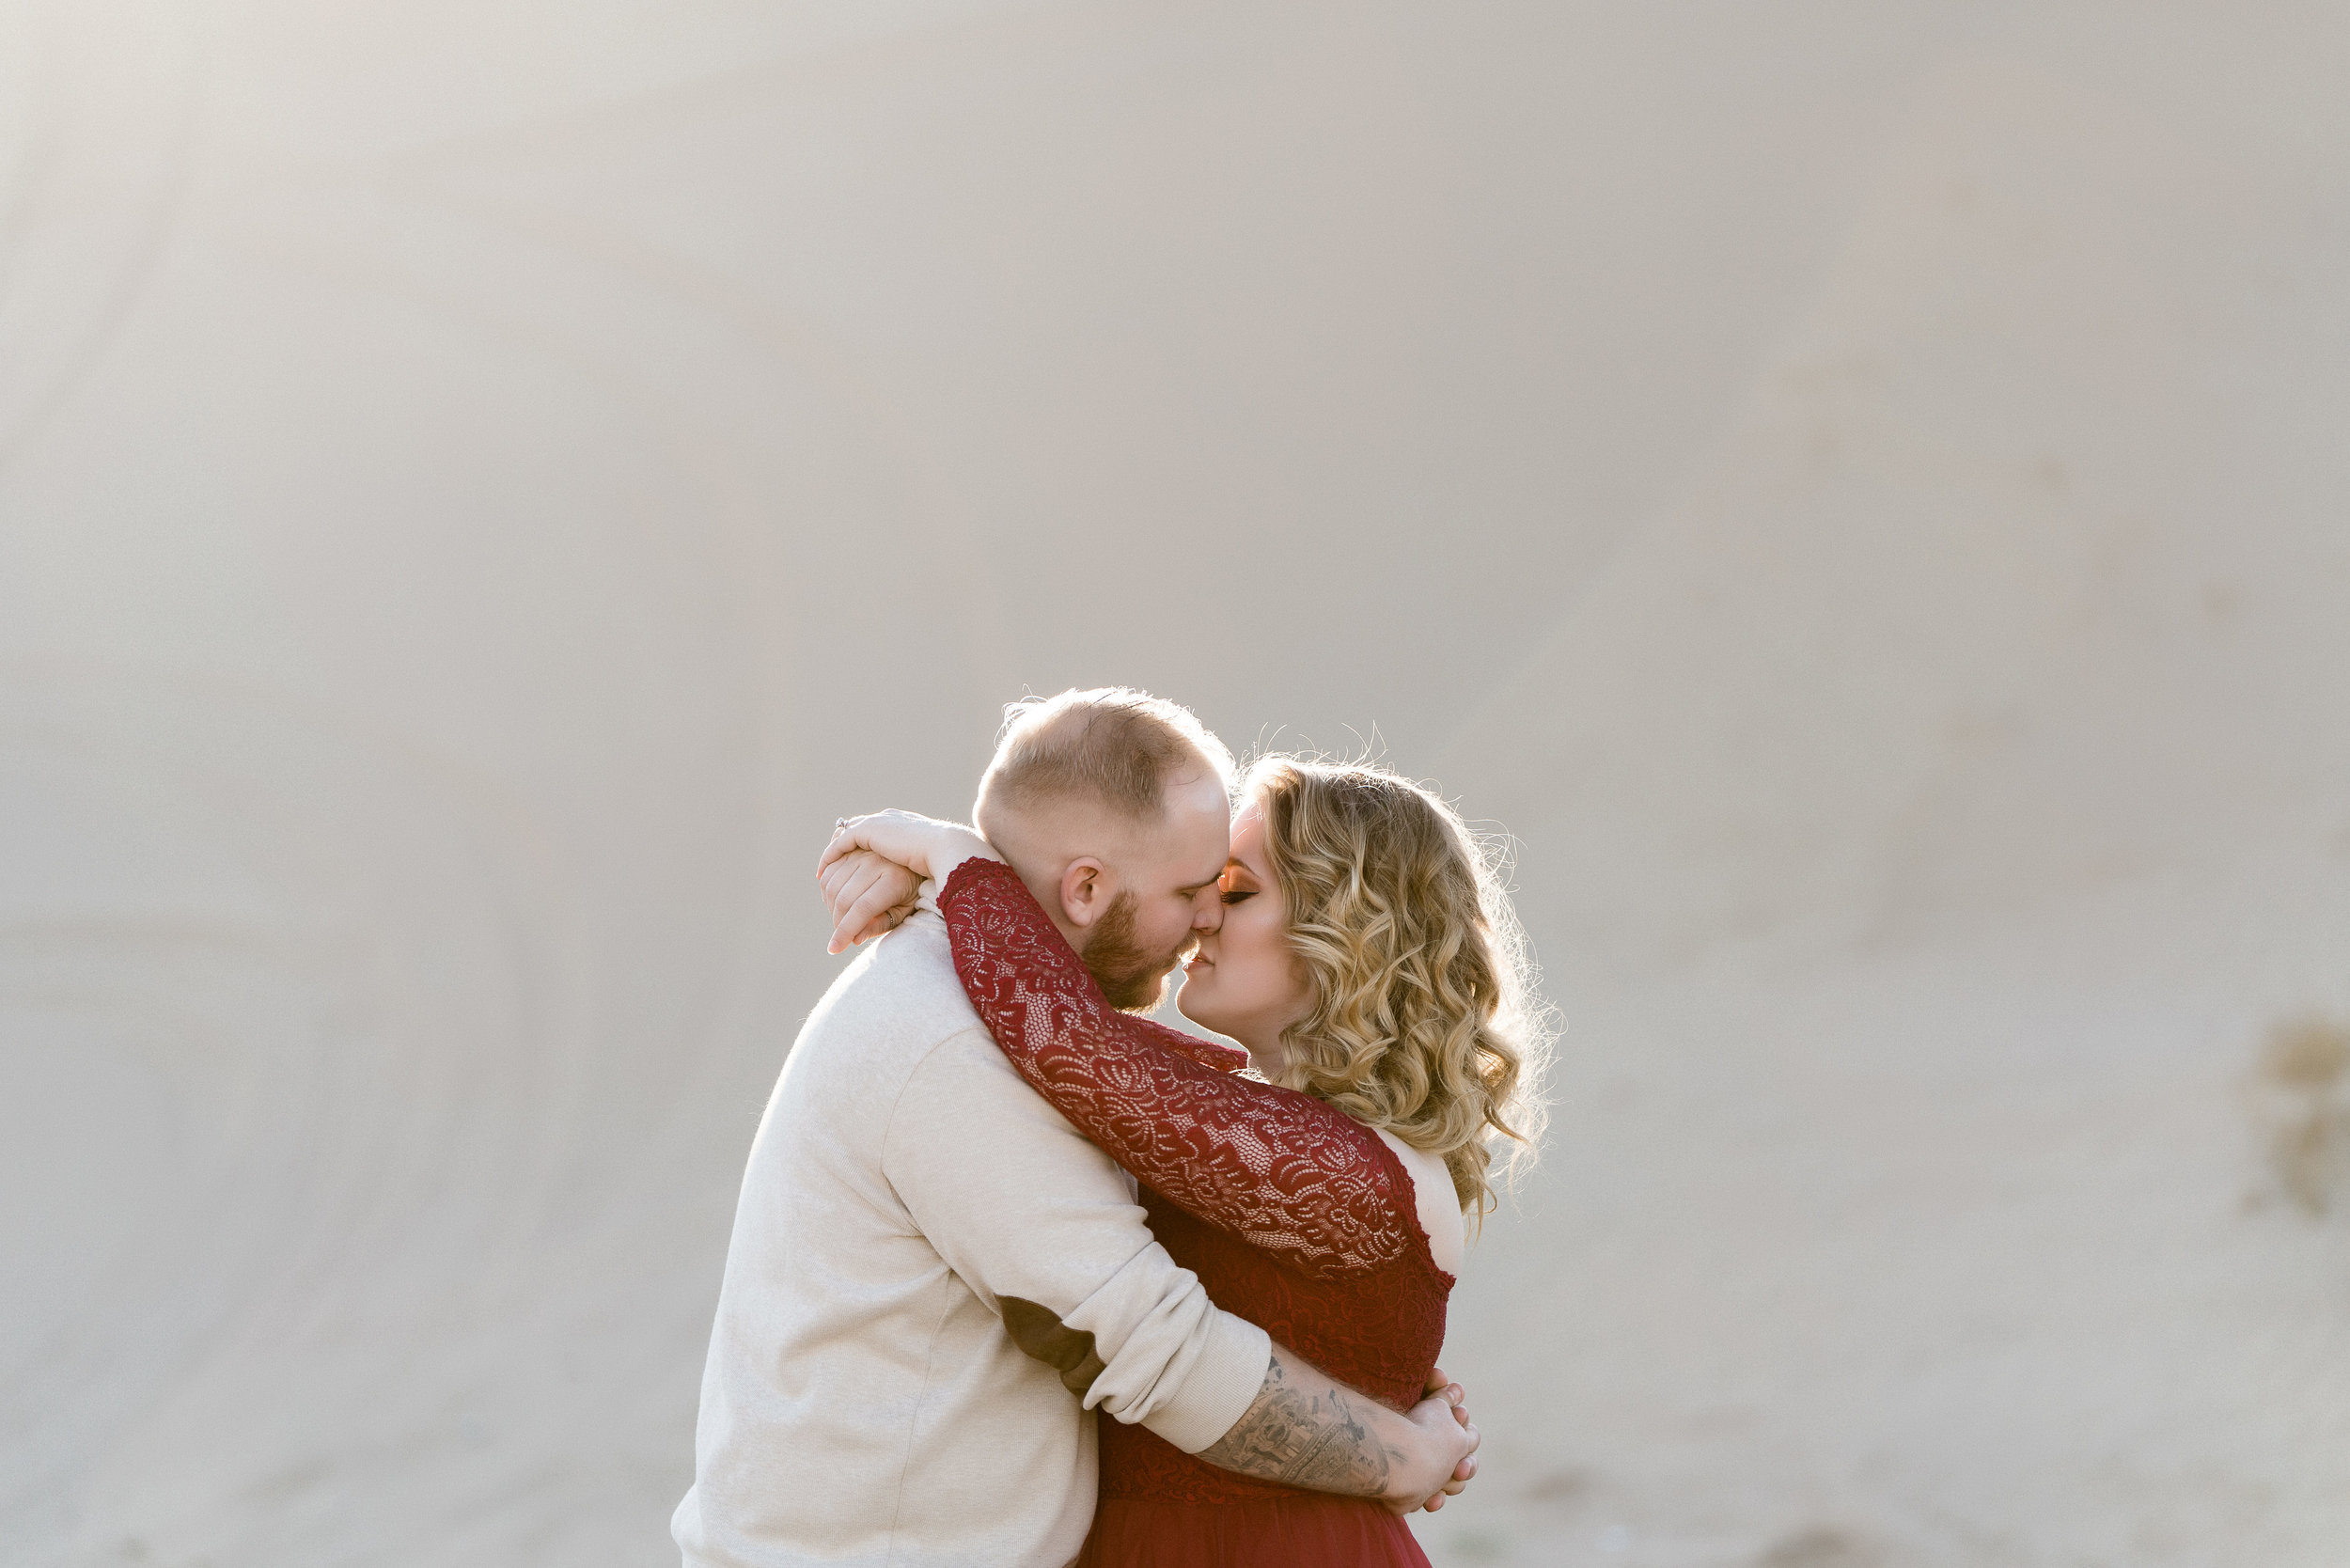 NewMexico-Sand-Dunes-Engagement-Carissa-and-Ben-1090.jpg